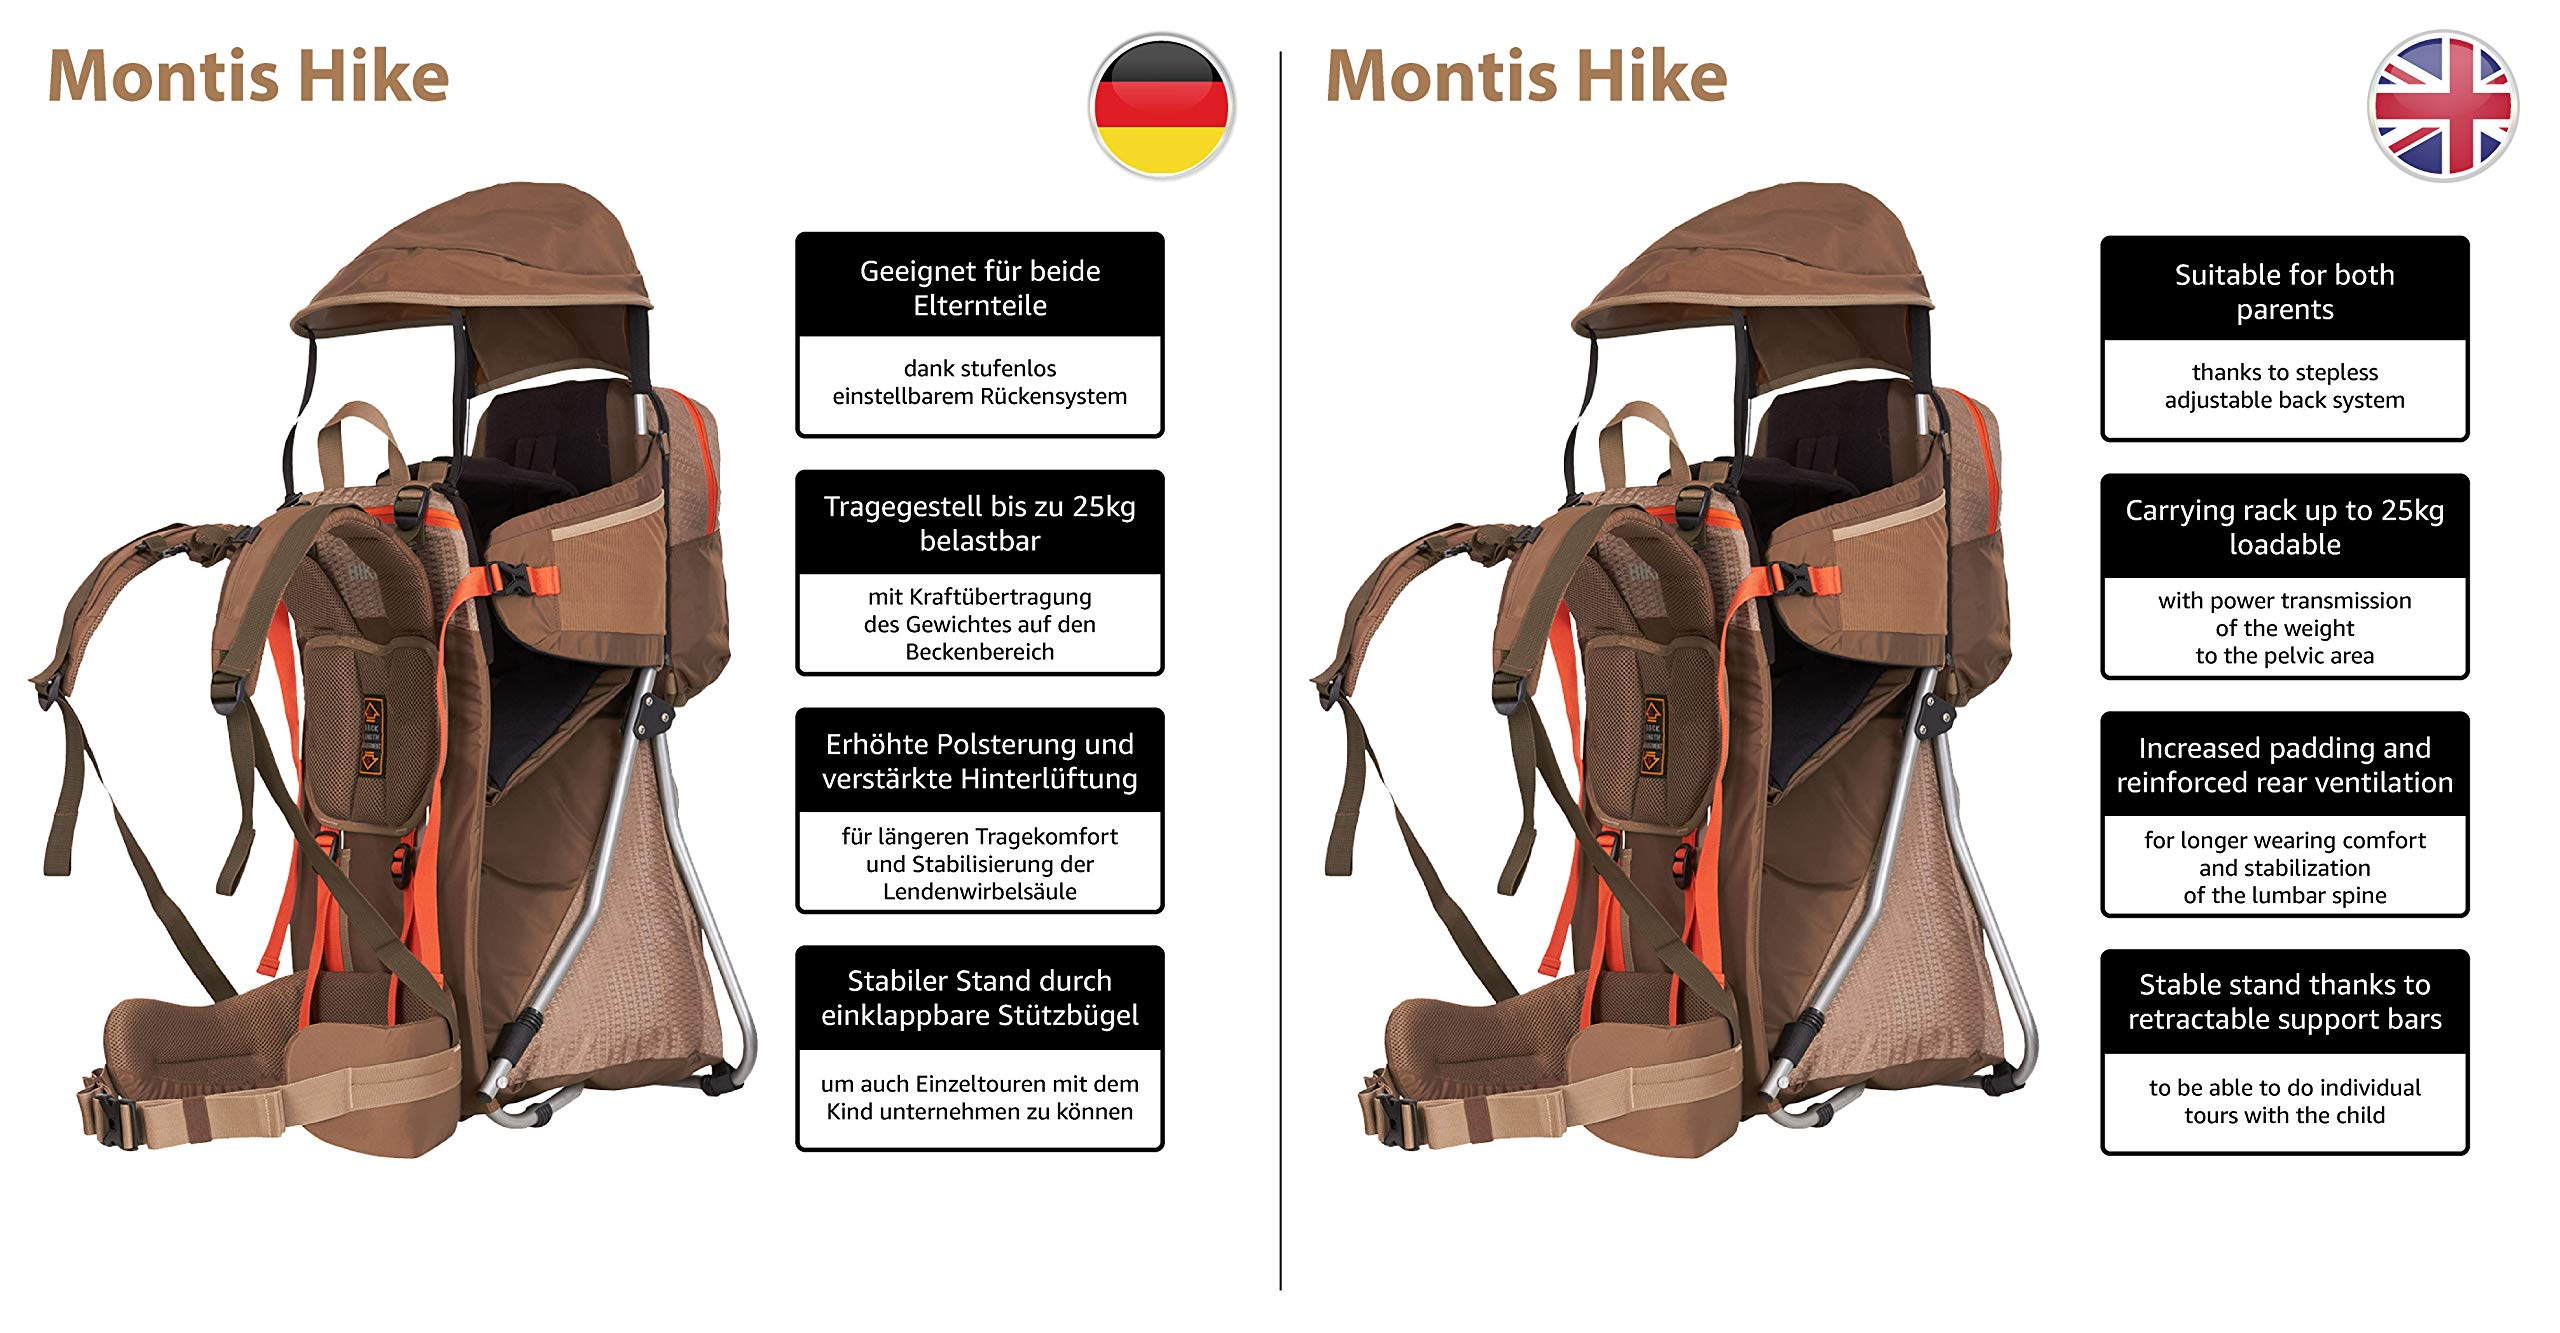 MONTIS HIKE, Premium Back Baby/Child Carrier, Up to 25kg, (mocha) M MONTIS OUTDOOR 89cm high, 37cm wide | up to 25kg | various colours | 28L seat bag Laminated and dirt-repellant outer material | approx. 2.2kg (without extras) Fully-adjustable, padded 5-point child's safety harness | plush lining, raised wind guard, can be filled from both sides | forehead cushion 4